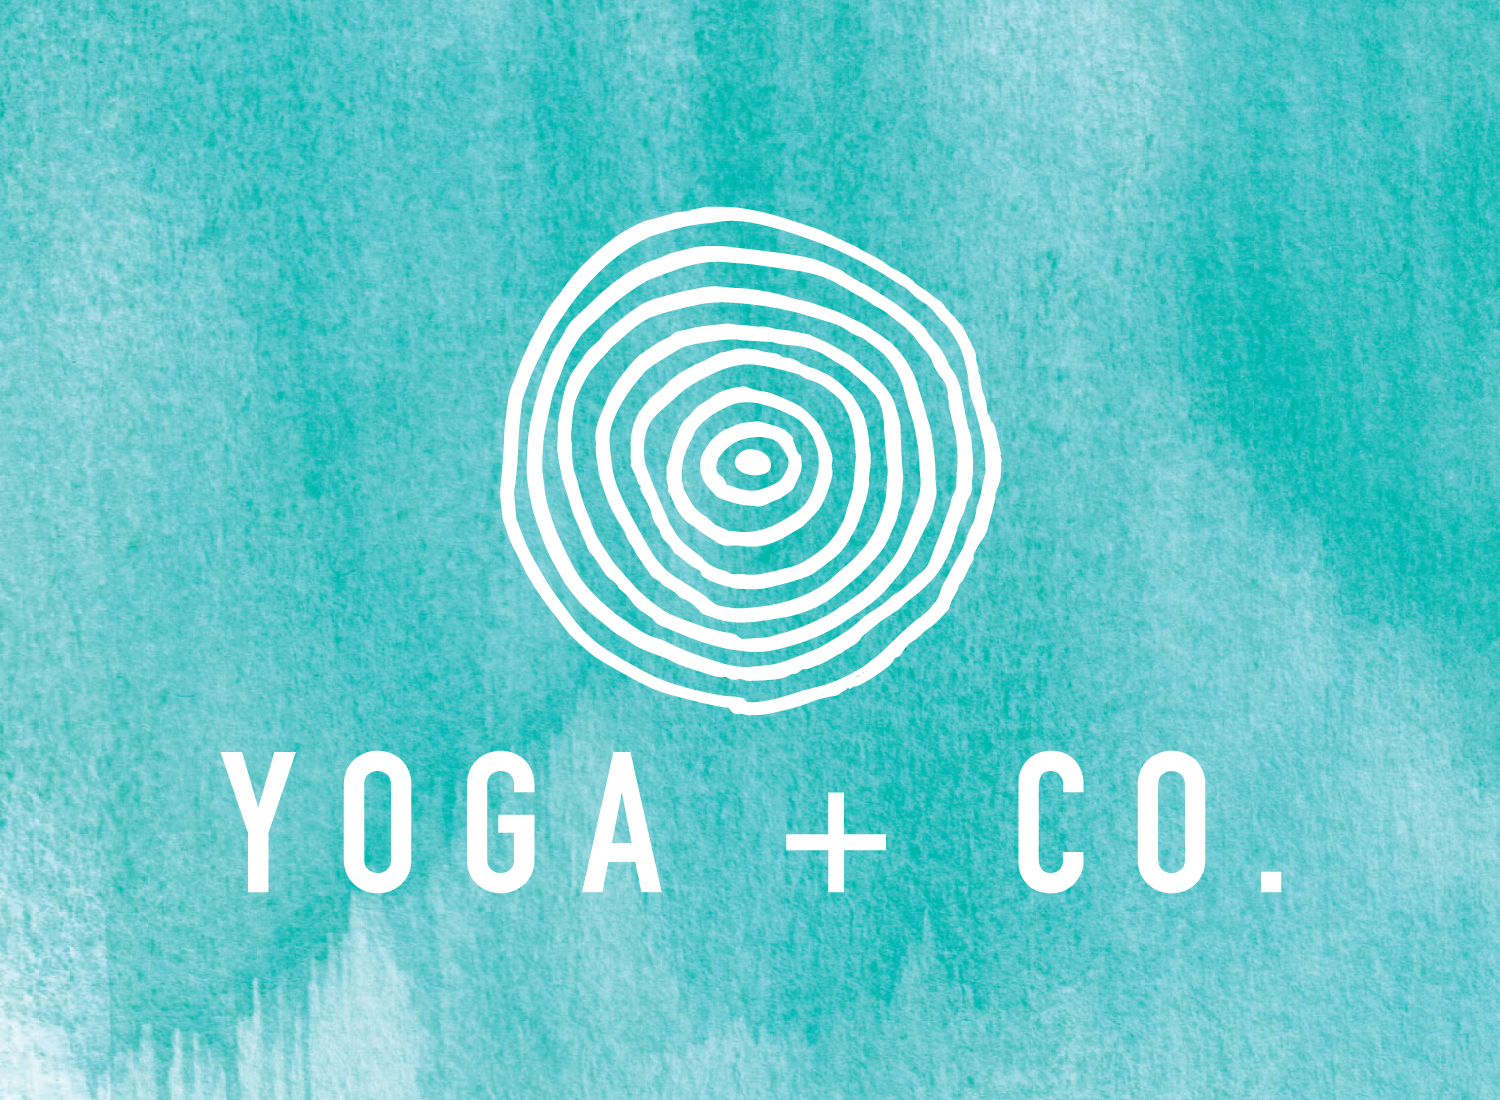 2019_CC-Work-Yoga+Co_01.png